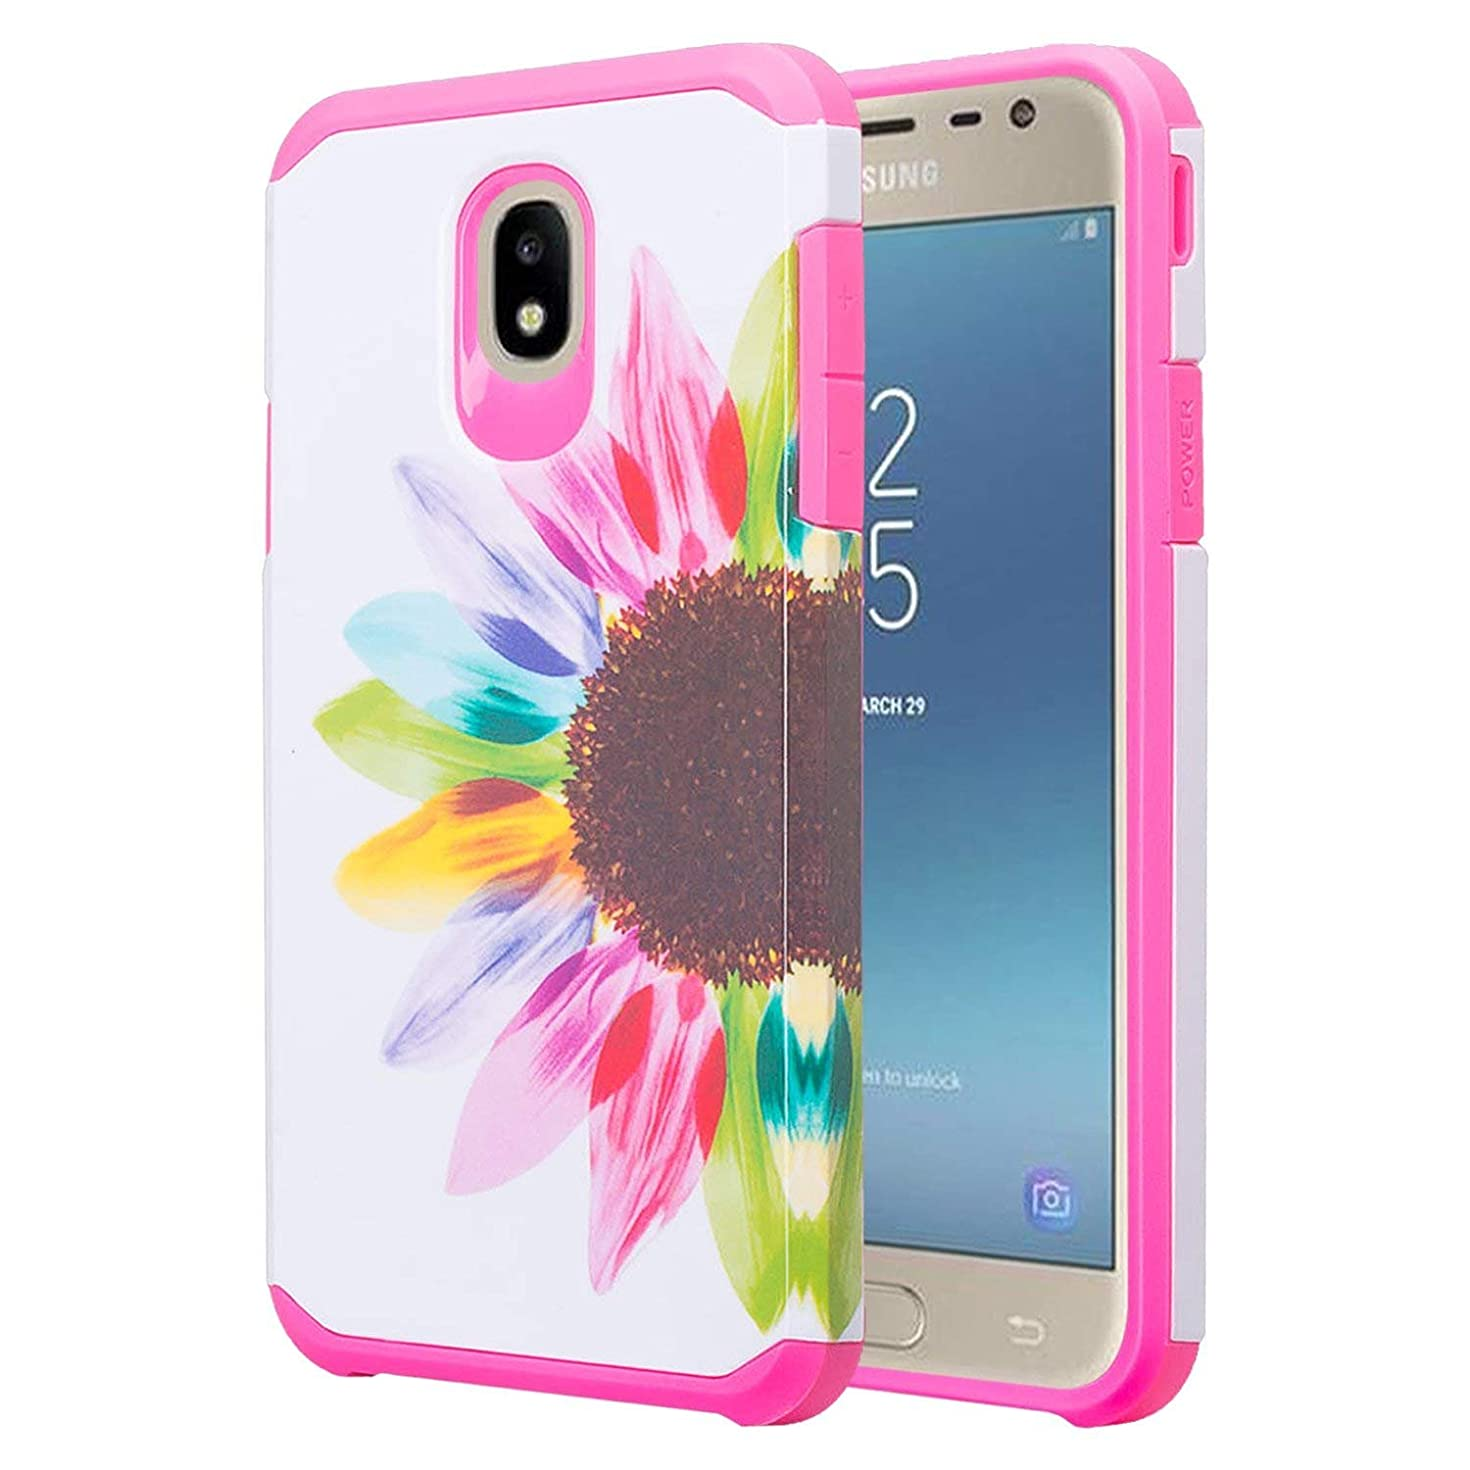 J7 Star Case, Phonelicious Samsung Galaxy J7 Refine, J7V 2nd Gen, J7 2018 Phone Cover Dual Layer Hybrid Slim Fit Screen Protector (Sun Flower)